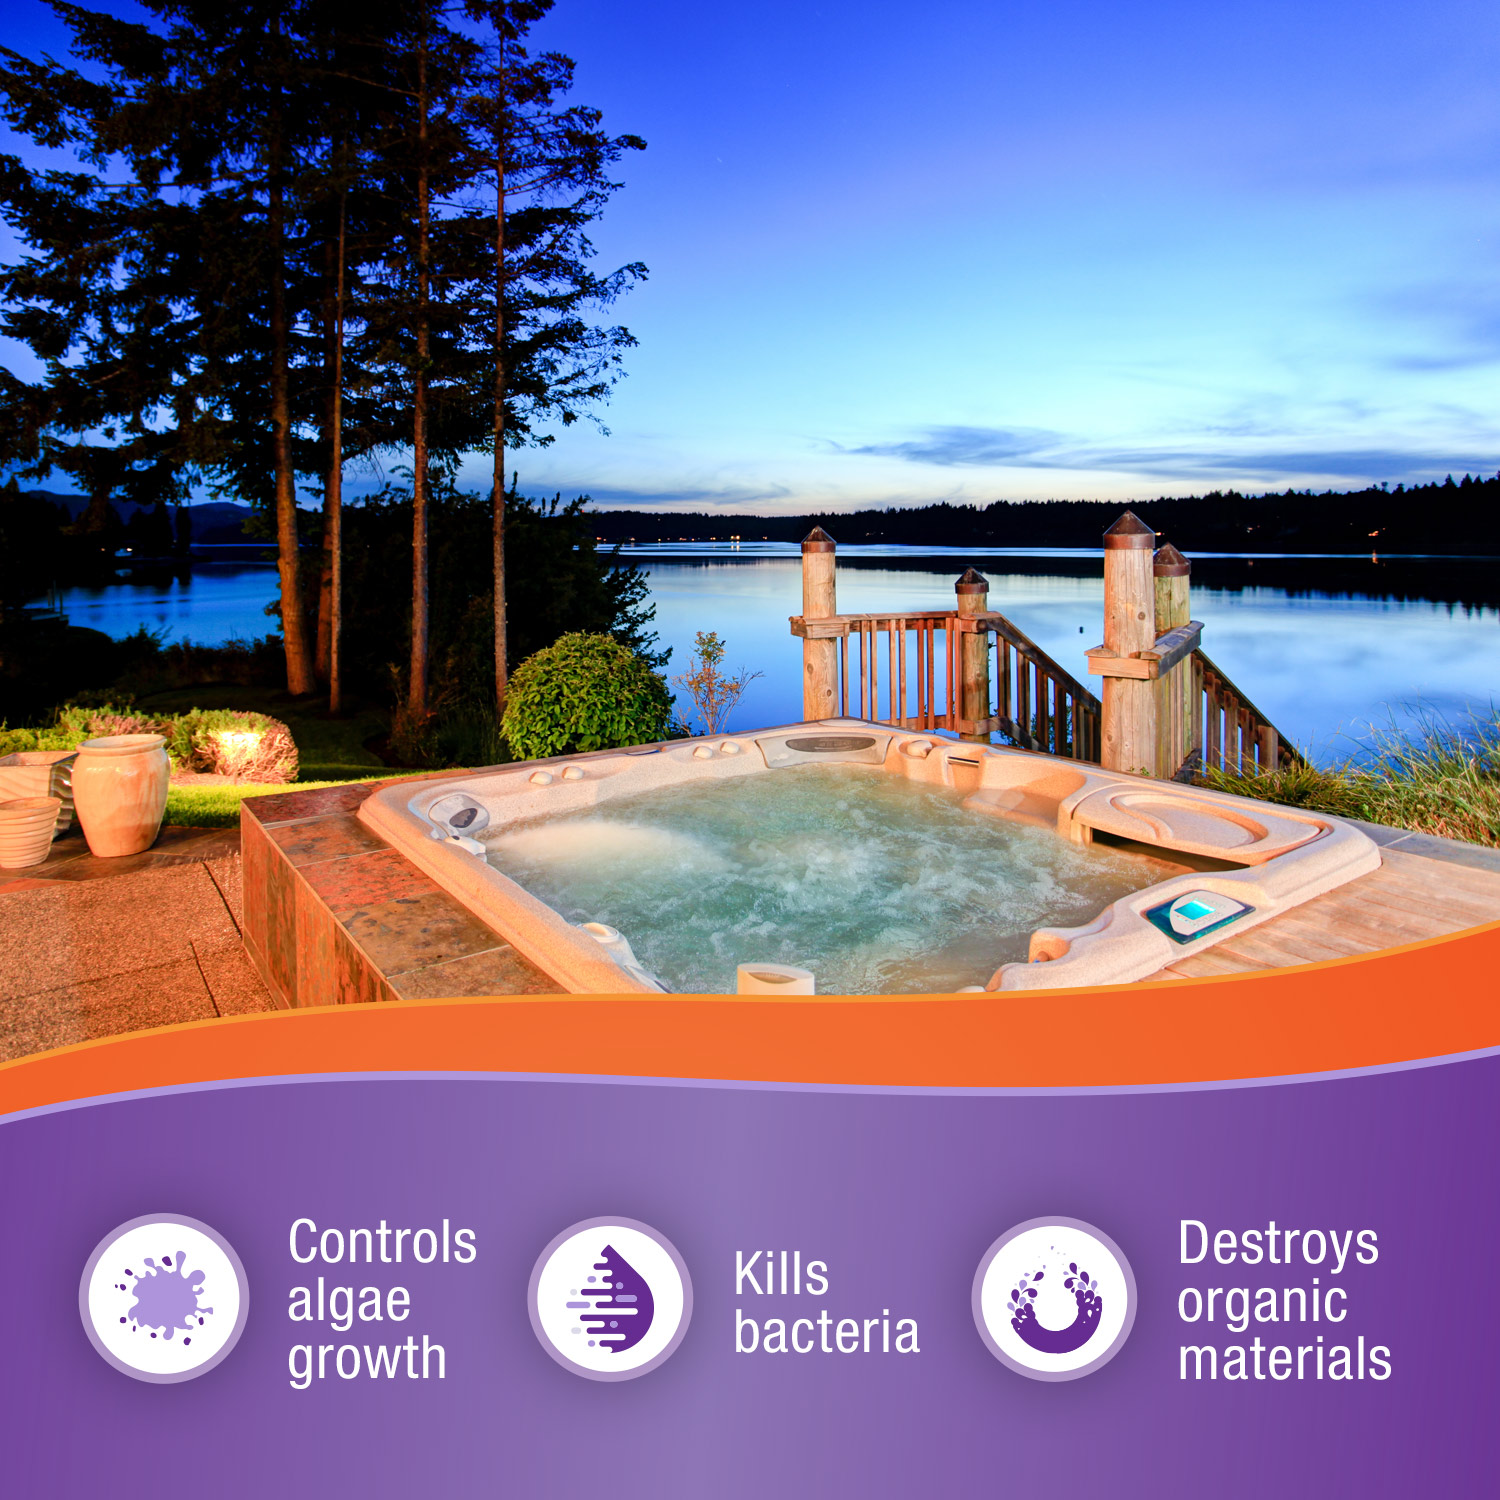 Spa Selections chlorinating granules controls algae growth, kills bacteria and destroys organic materials. Photo of outdoor hot tub overlooking a lake.